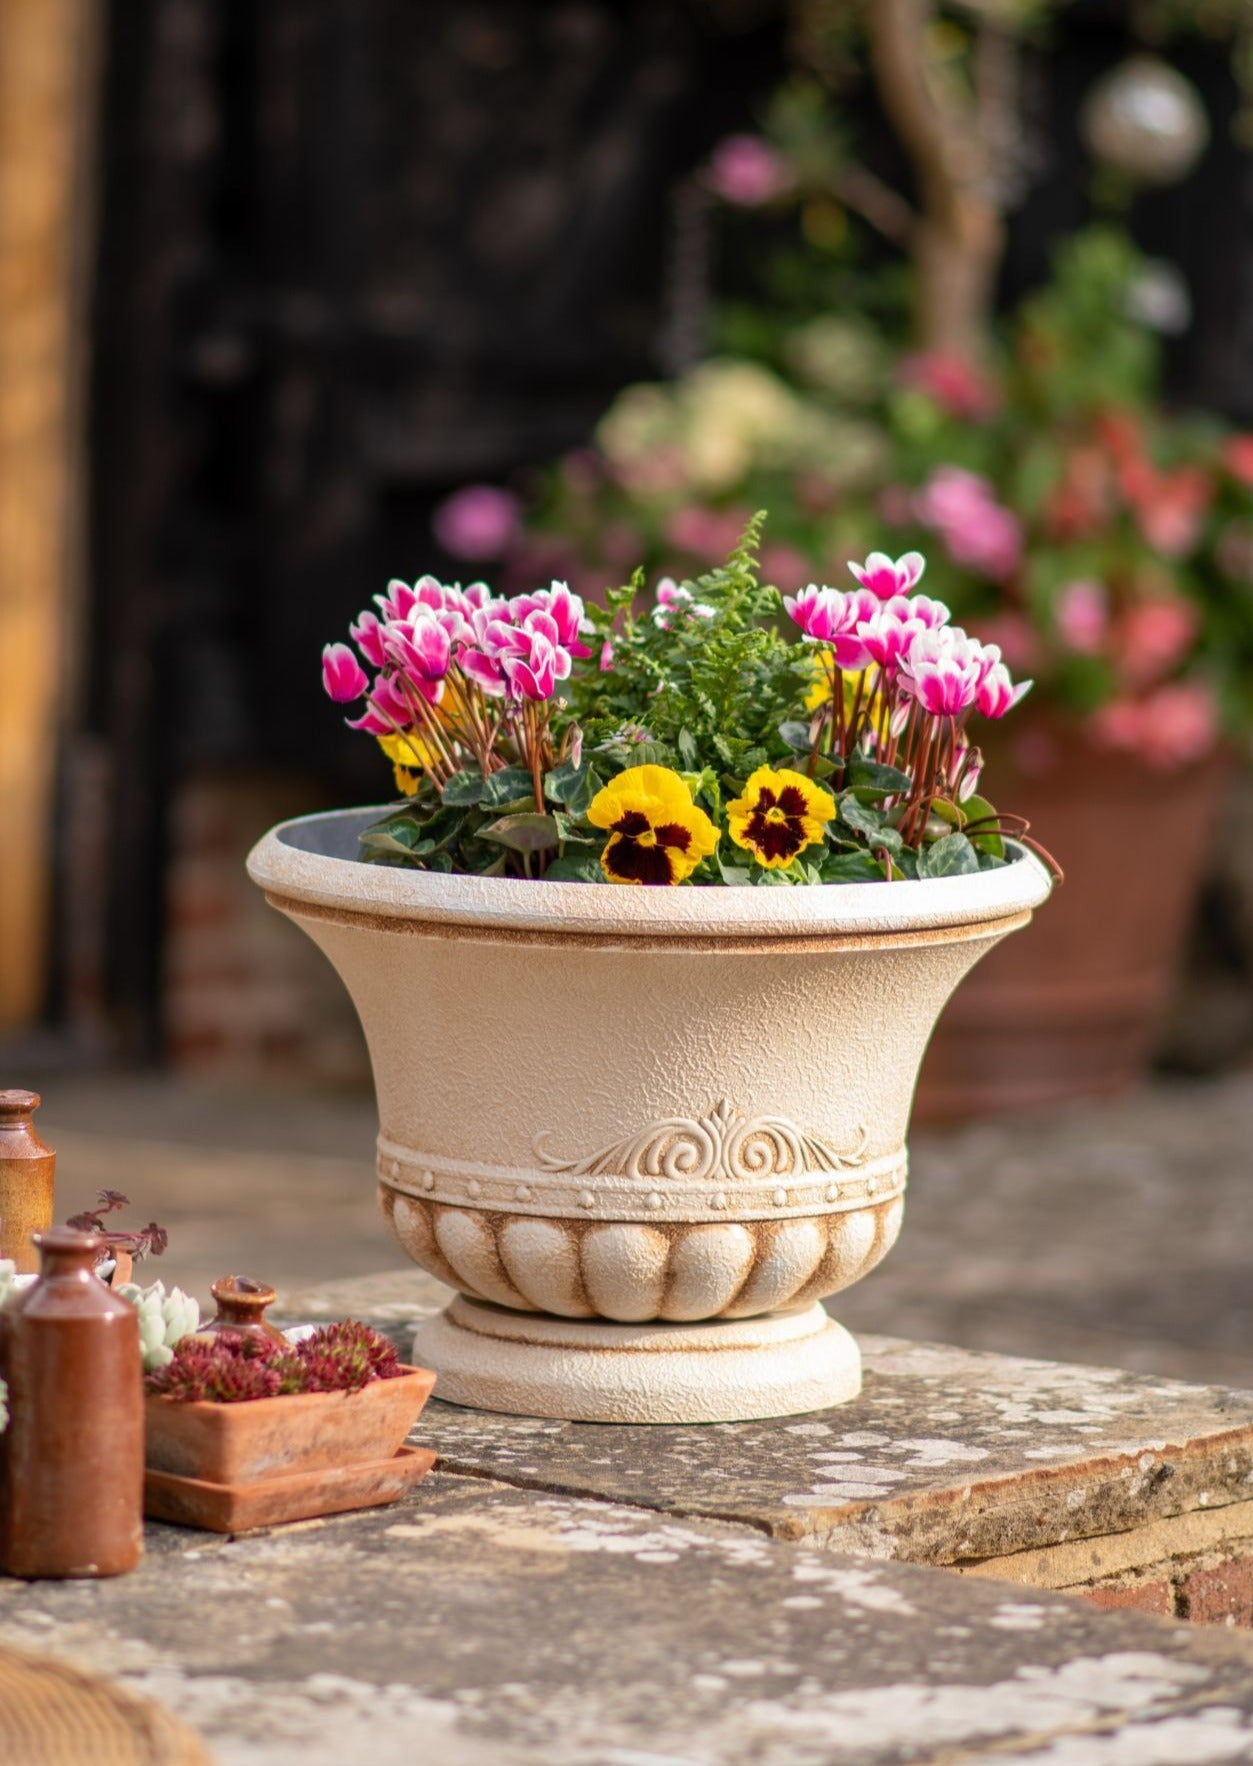 42cm Siena Urn Planter - Pre-order for 01/03/2021